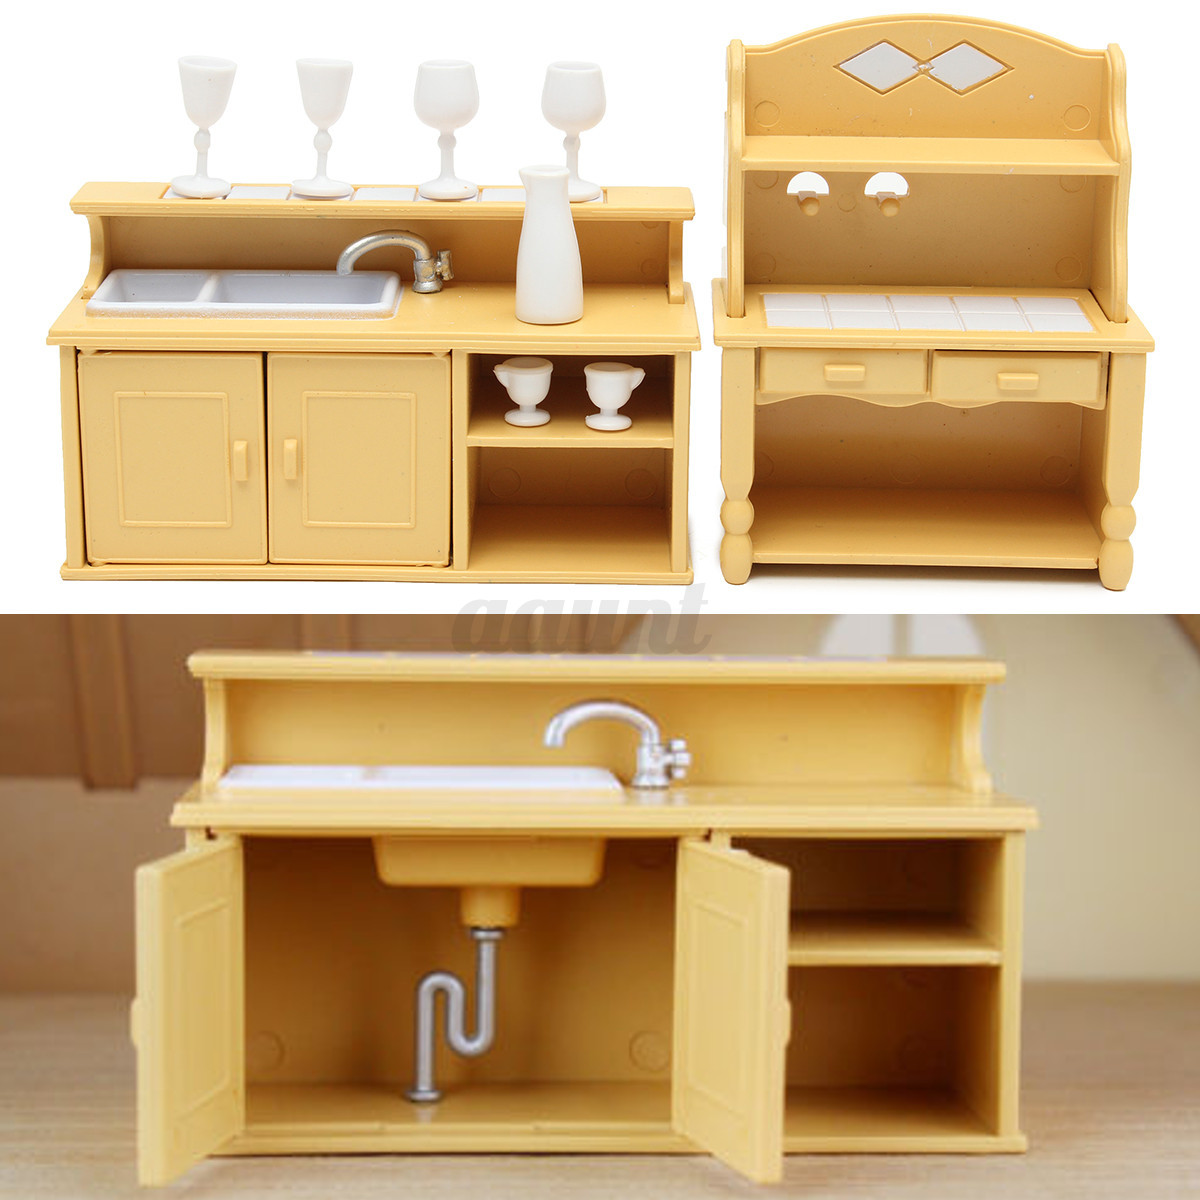 Cabinets Plastic Kitchen Miniature DollHouse Furniture